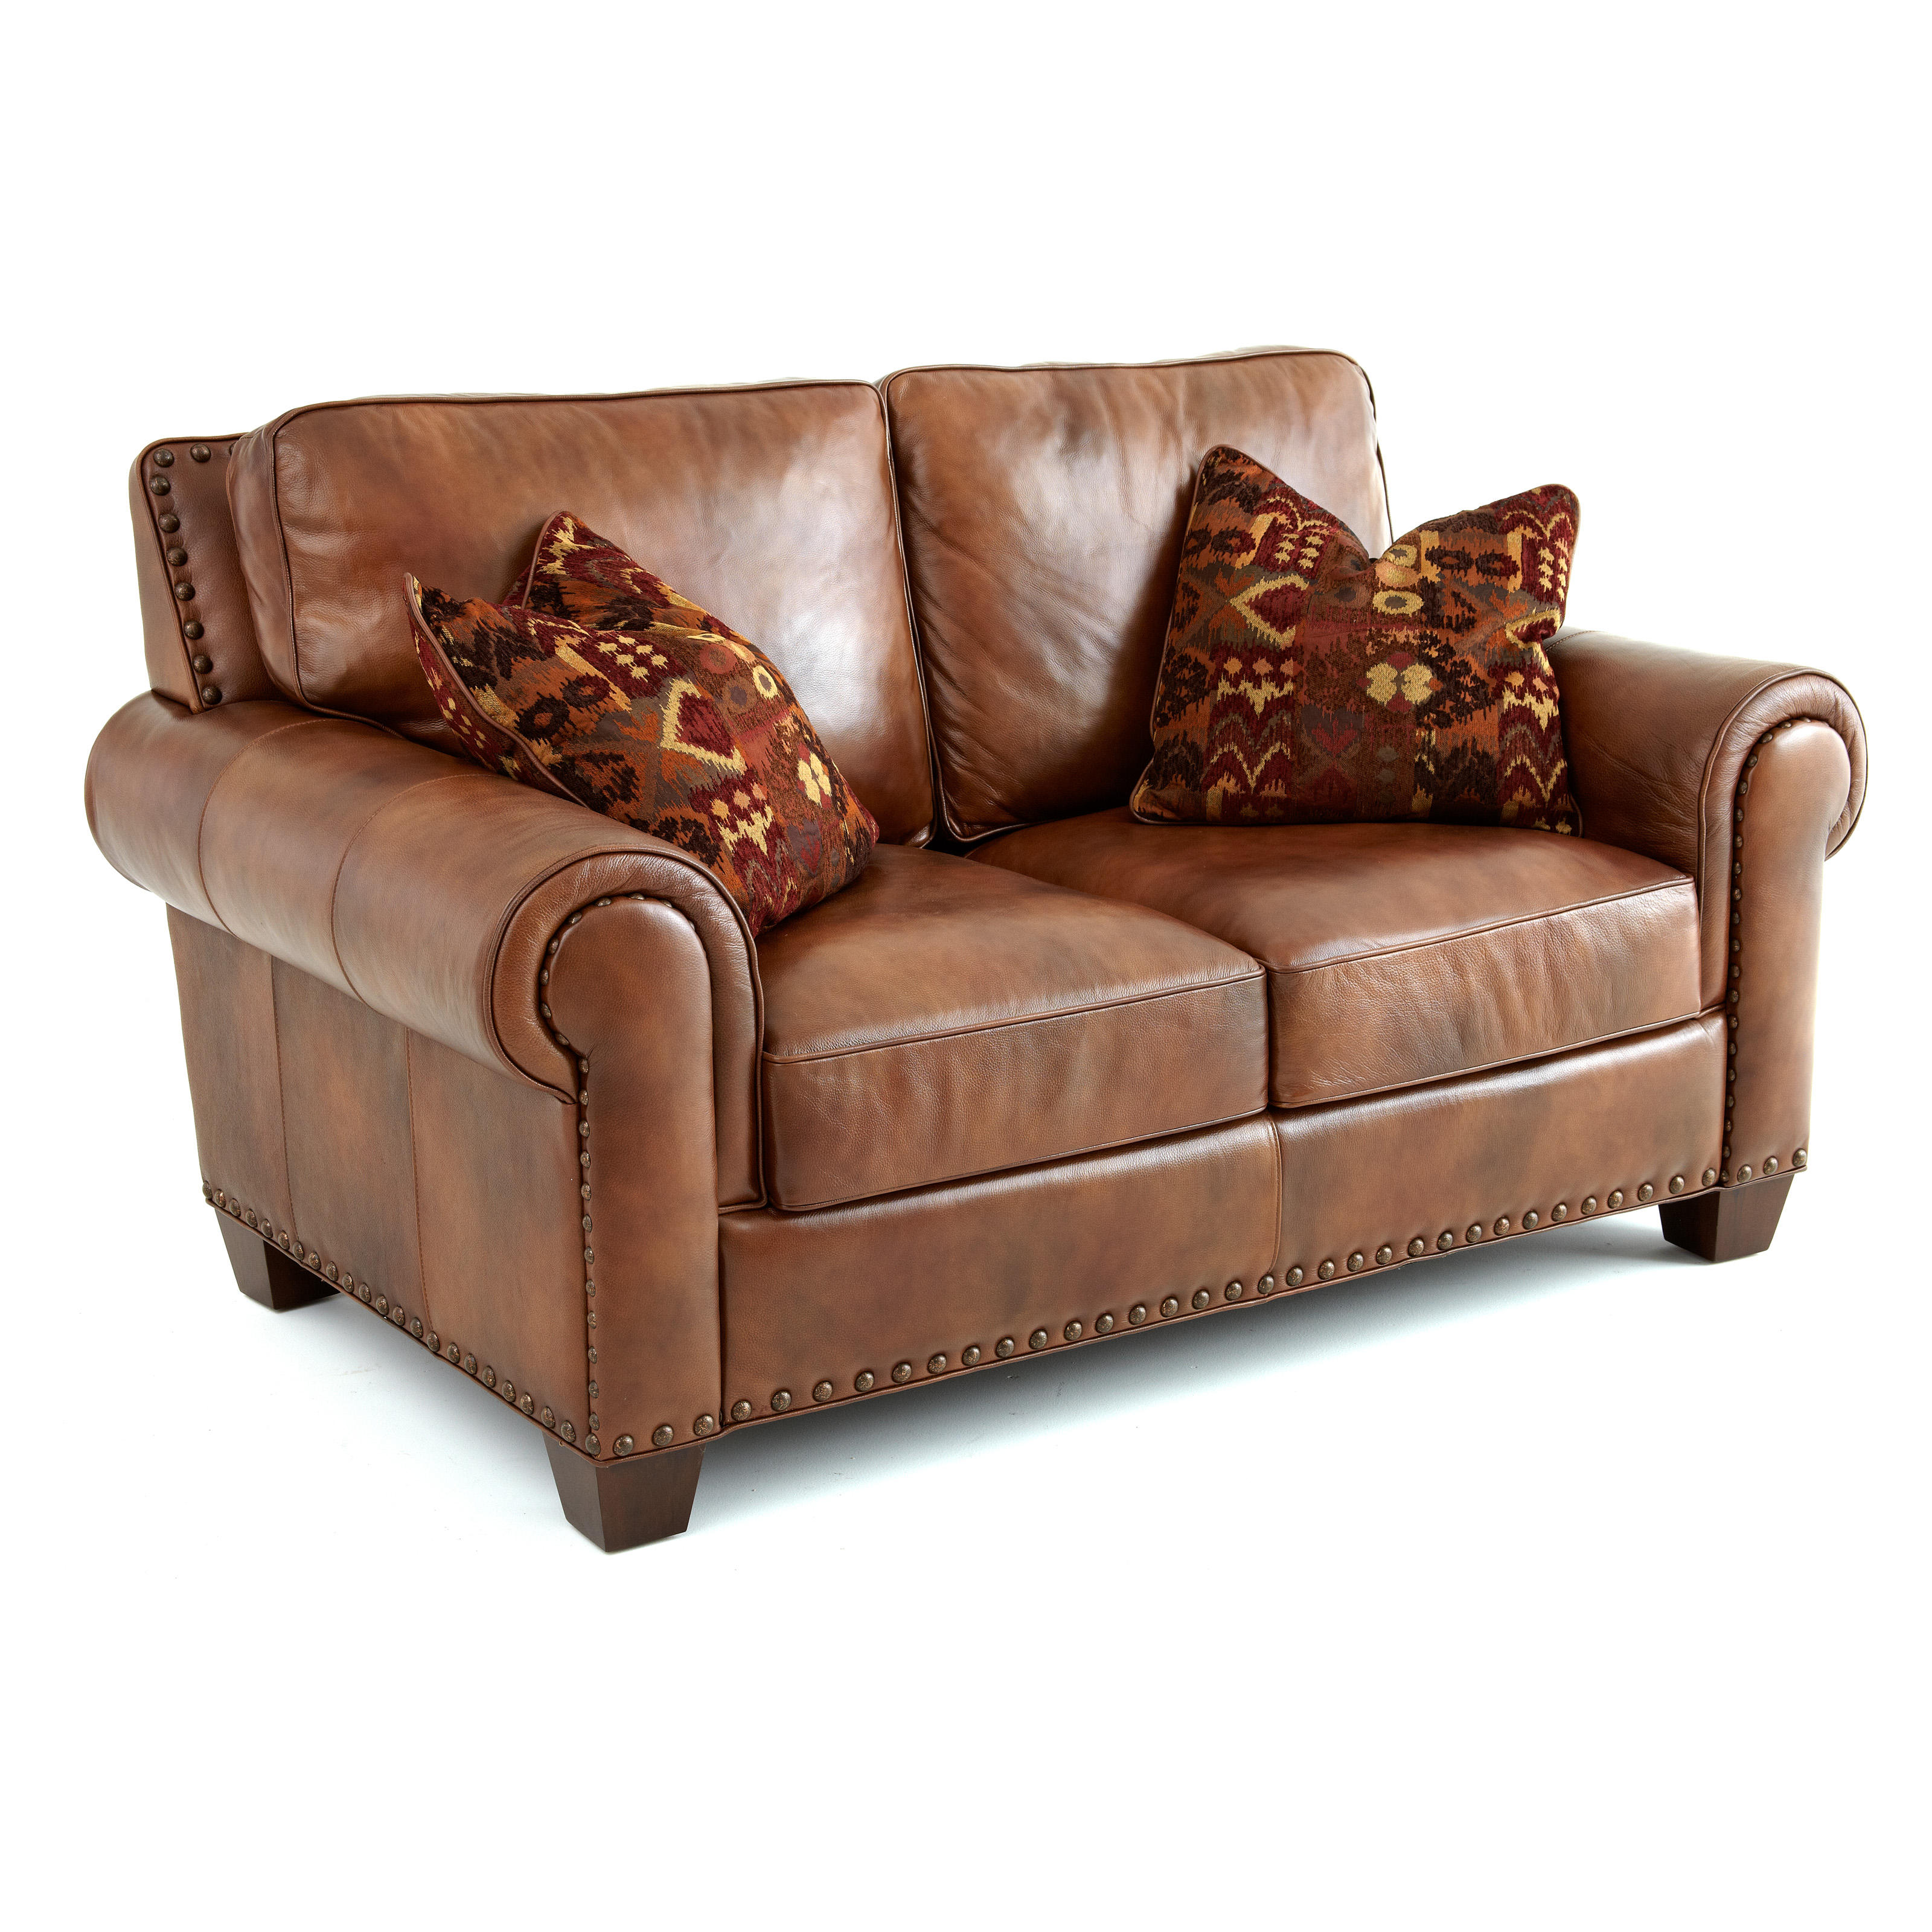 Decorative Pillows For Brown Leather Couch : Steve Silver Silverado Leather Loveseat with 2 Accent Pillows - Caramel Brown - Sofas ...